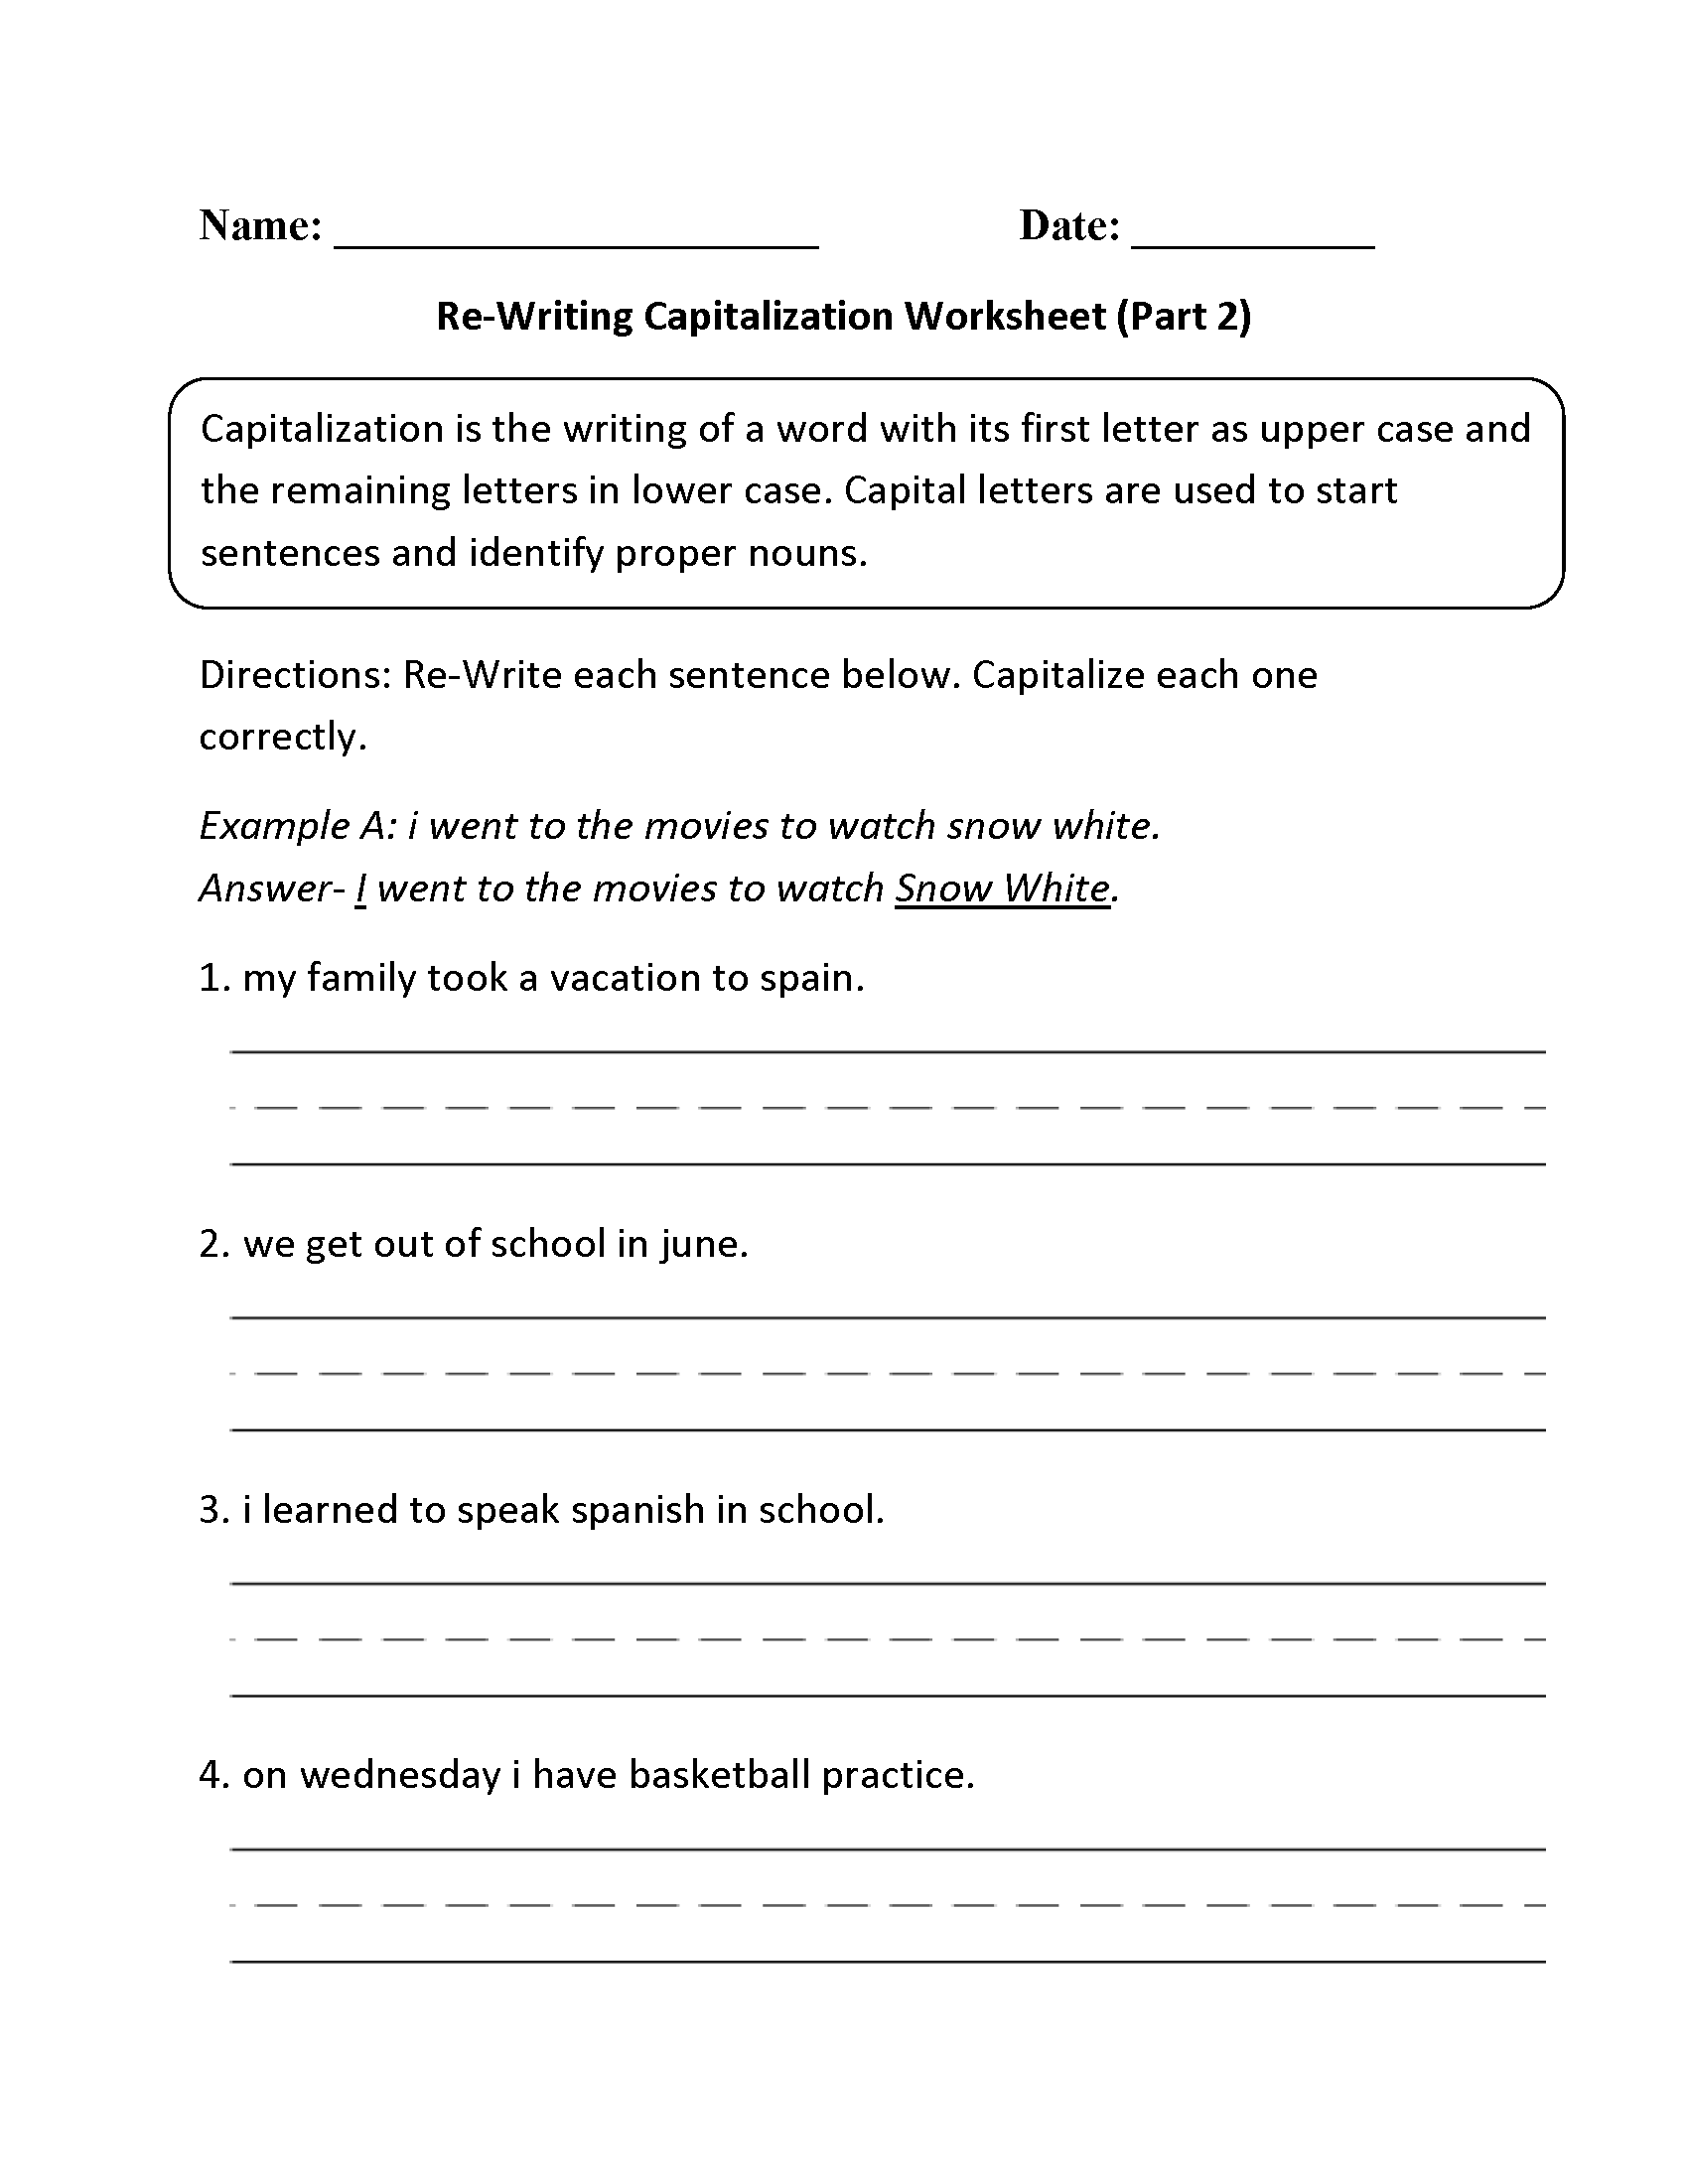 Englishlinx capitalization worksheets worksheet part 2 spiritdancerdesigns Gallery